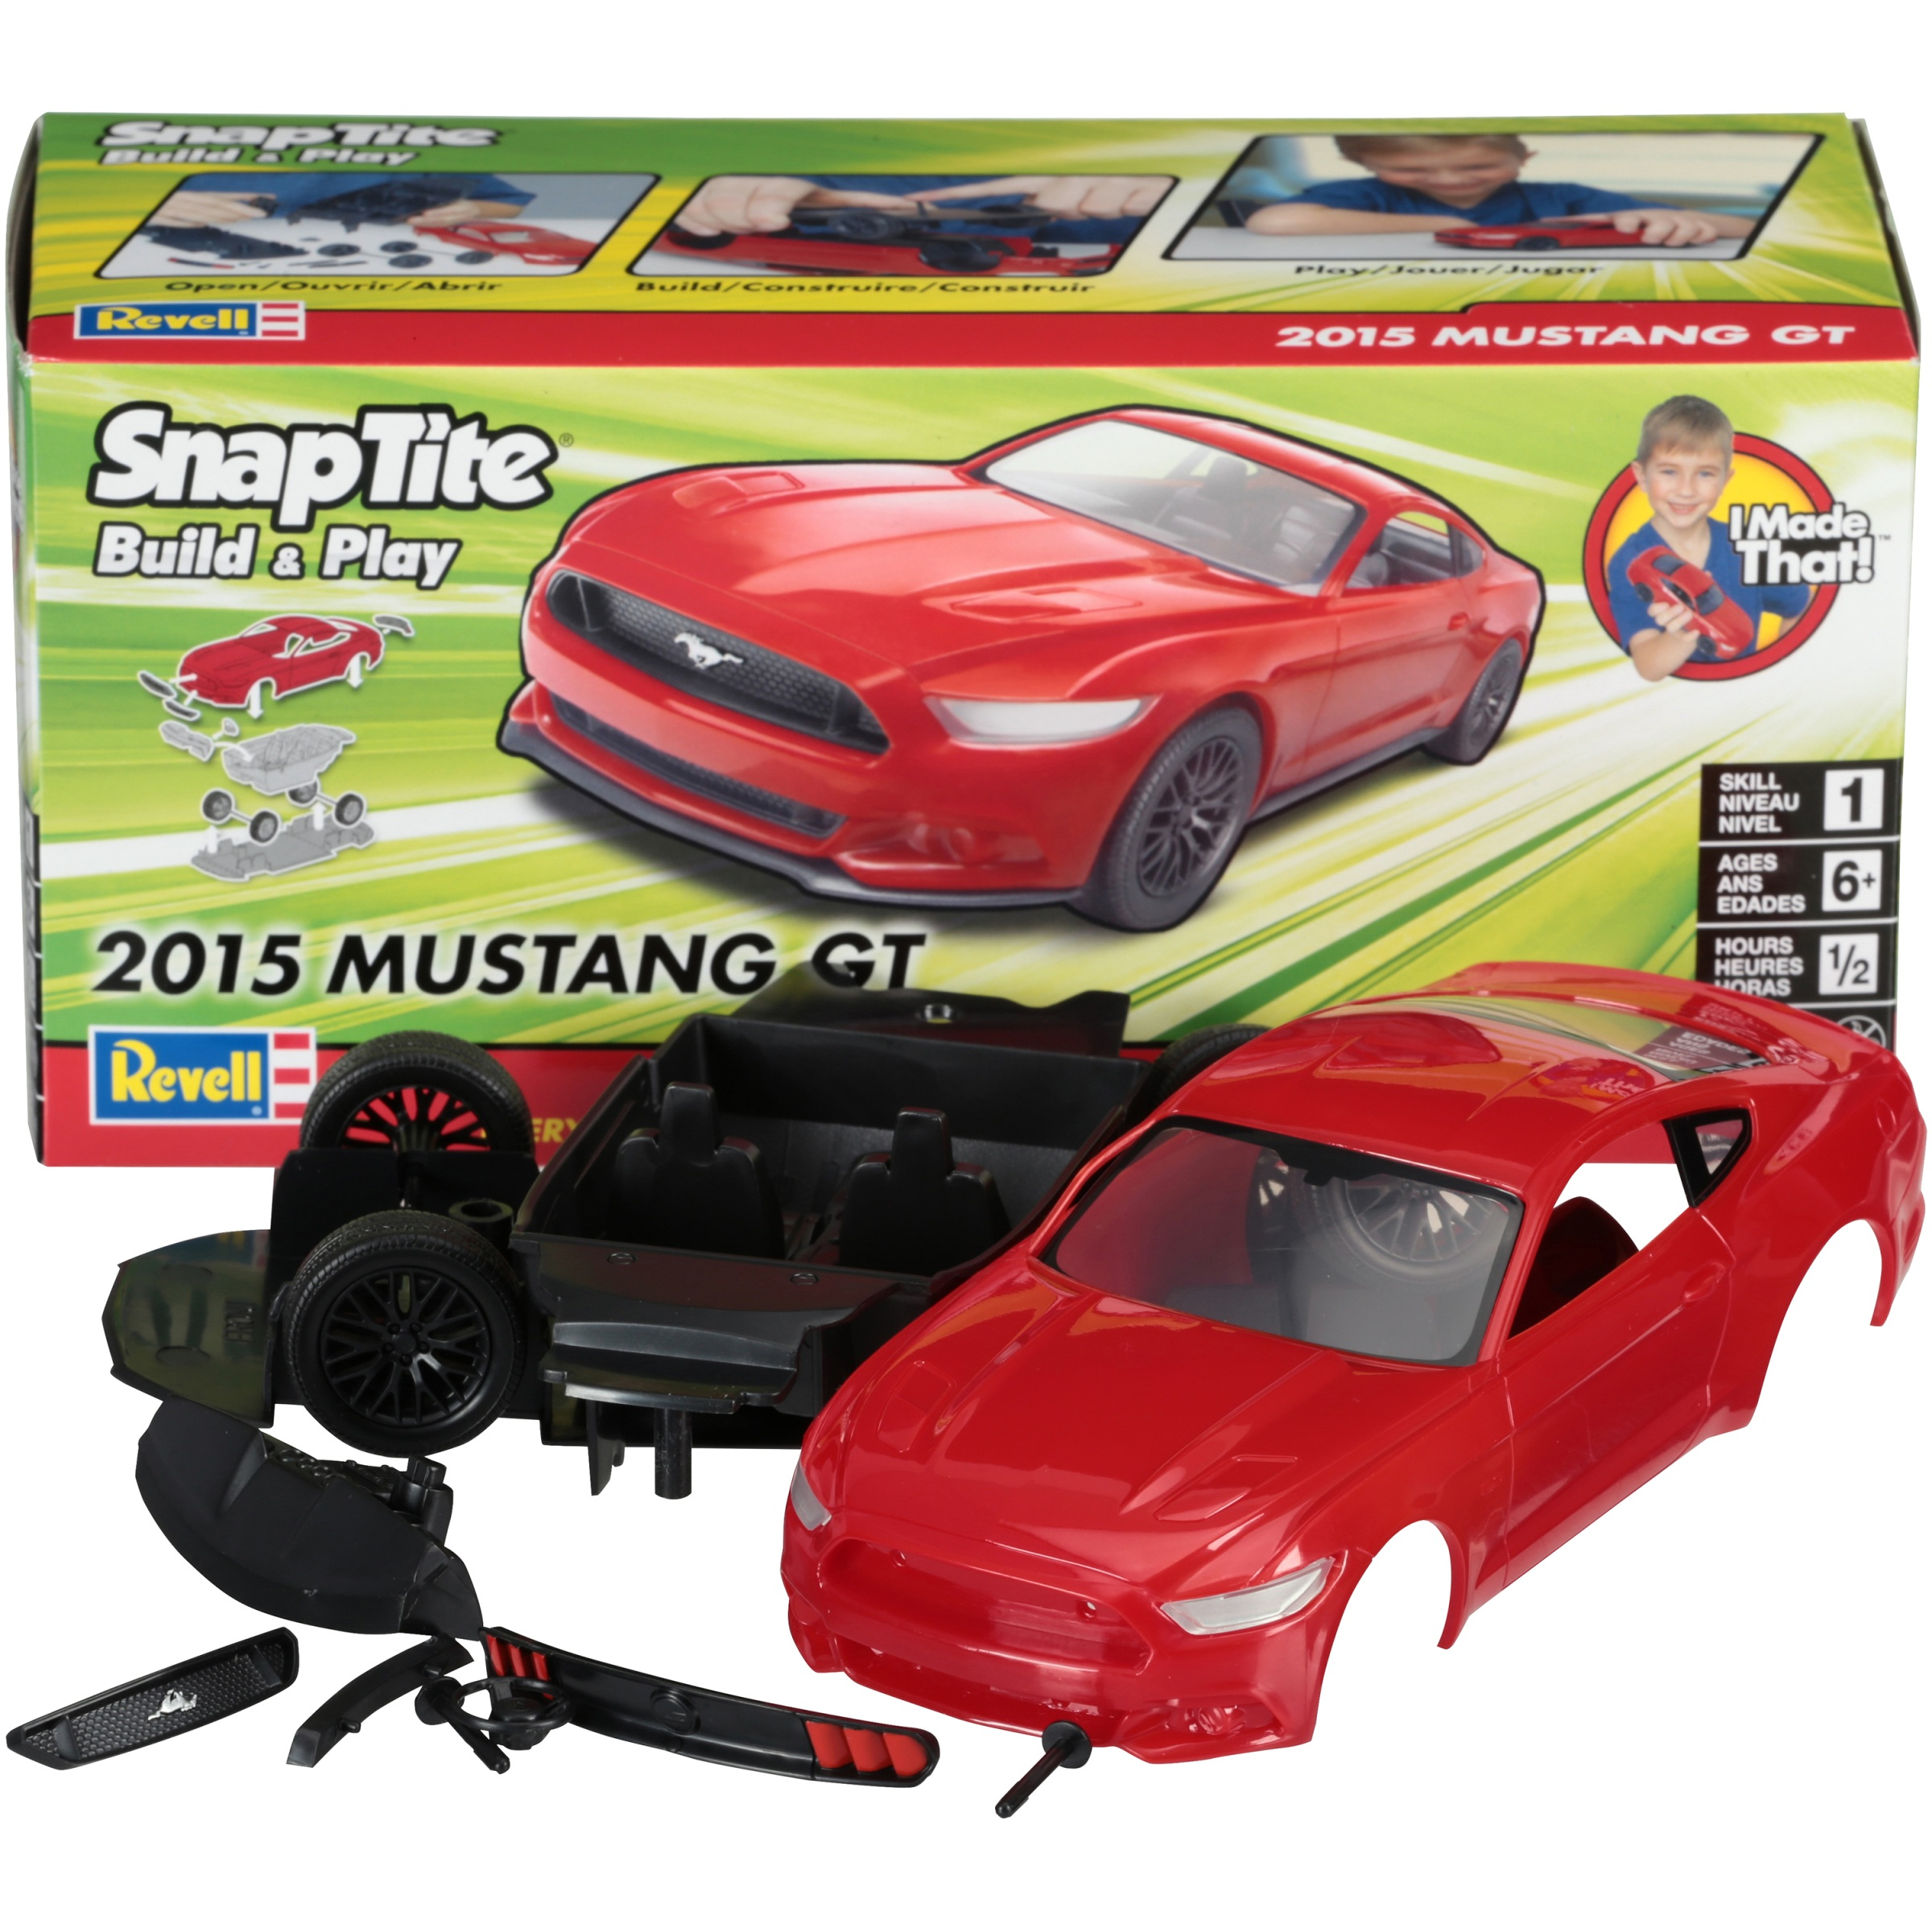 Revell SnapTite Build & Play 2015 Mustang GT Kit 12 pc Box by Revell Inc.